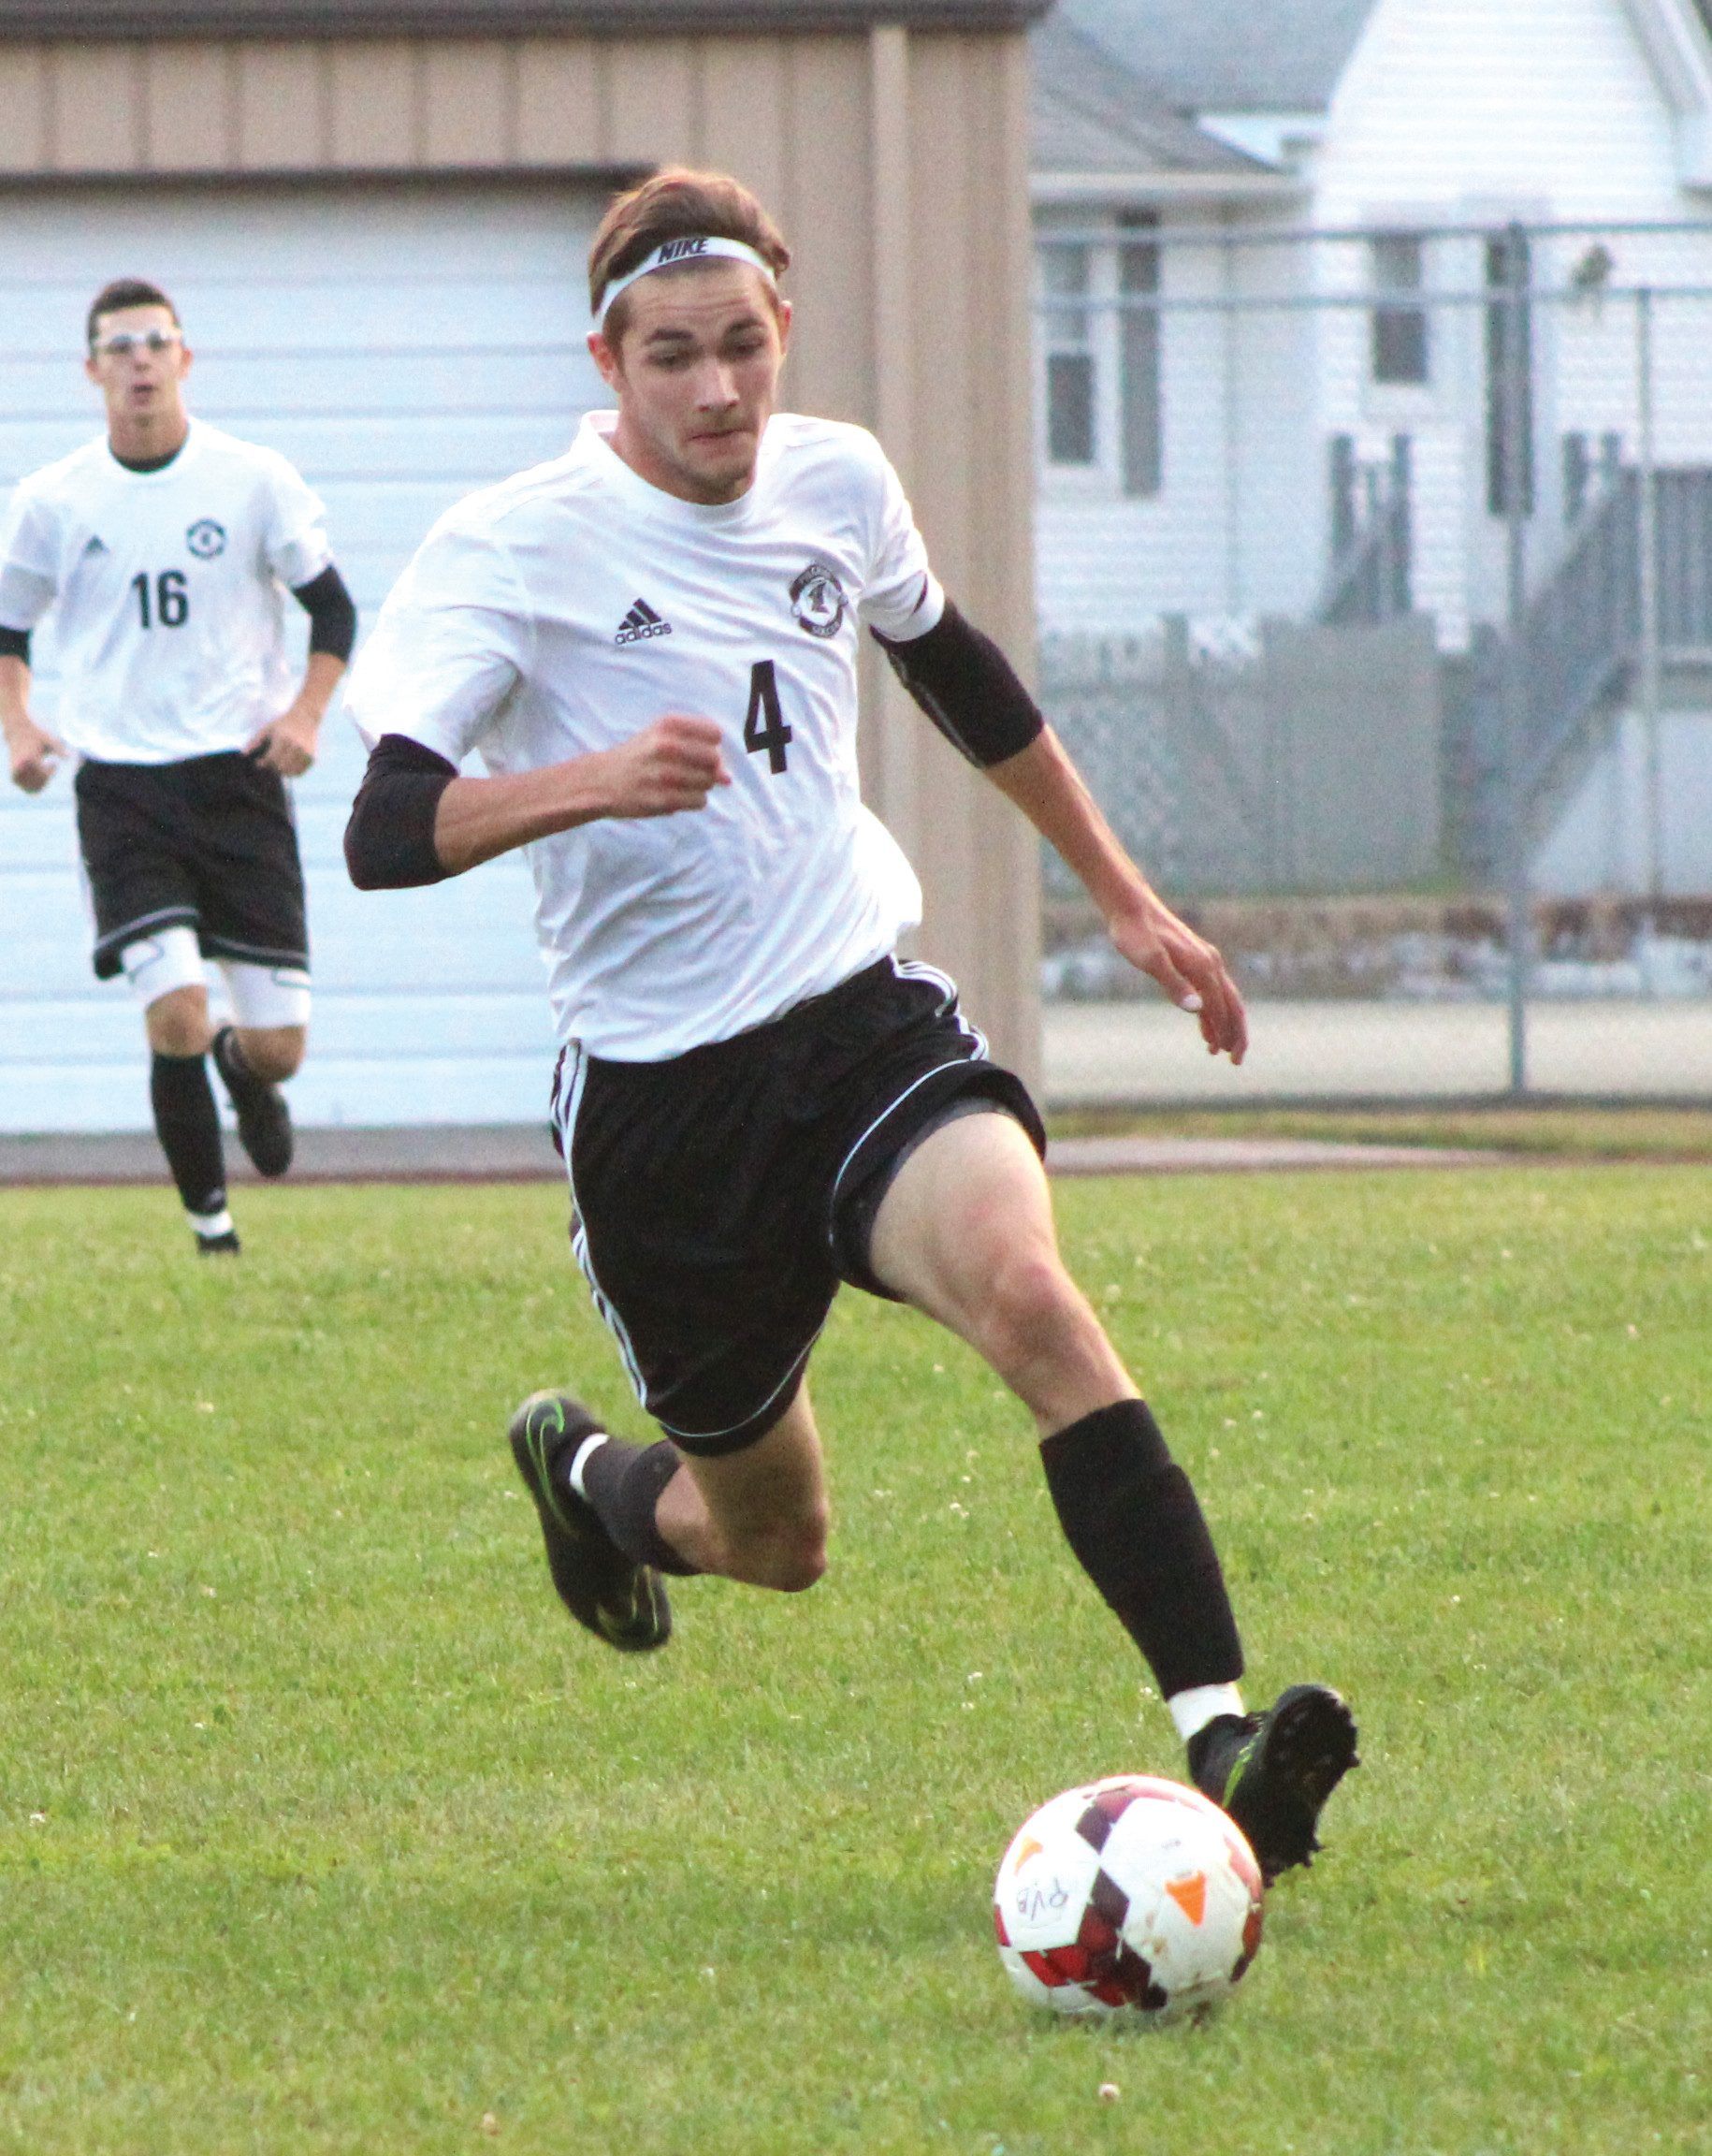 ADDING OFFENSE: Evan O'Connor scored a goal for Pilgrim on Thursday.